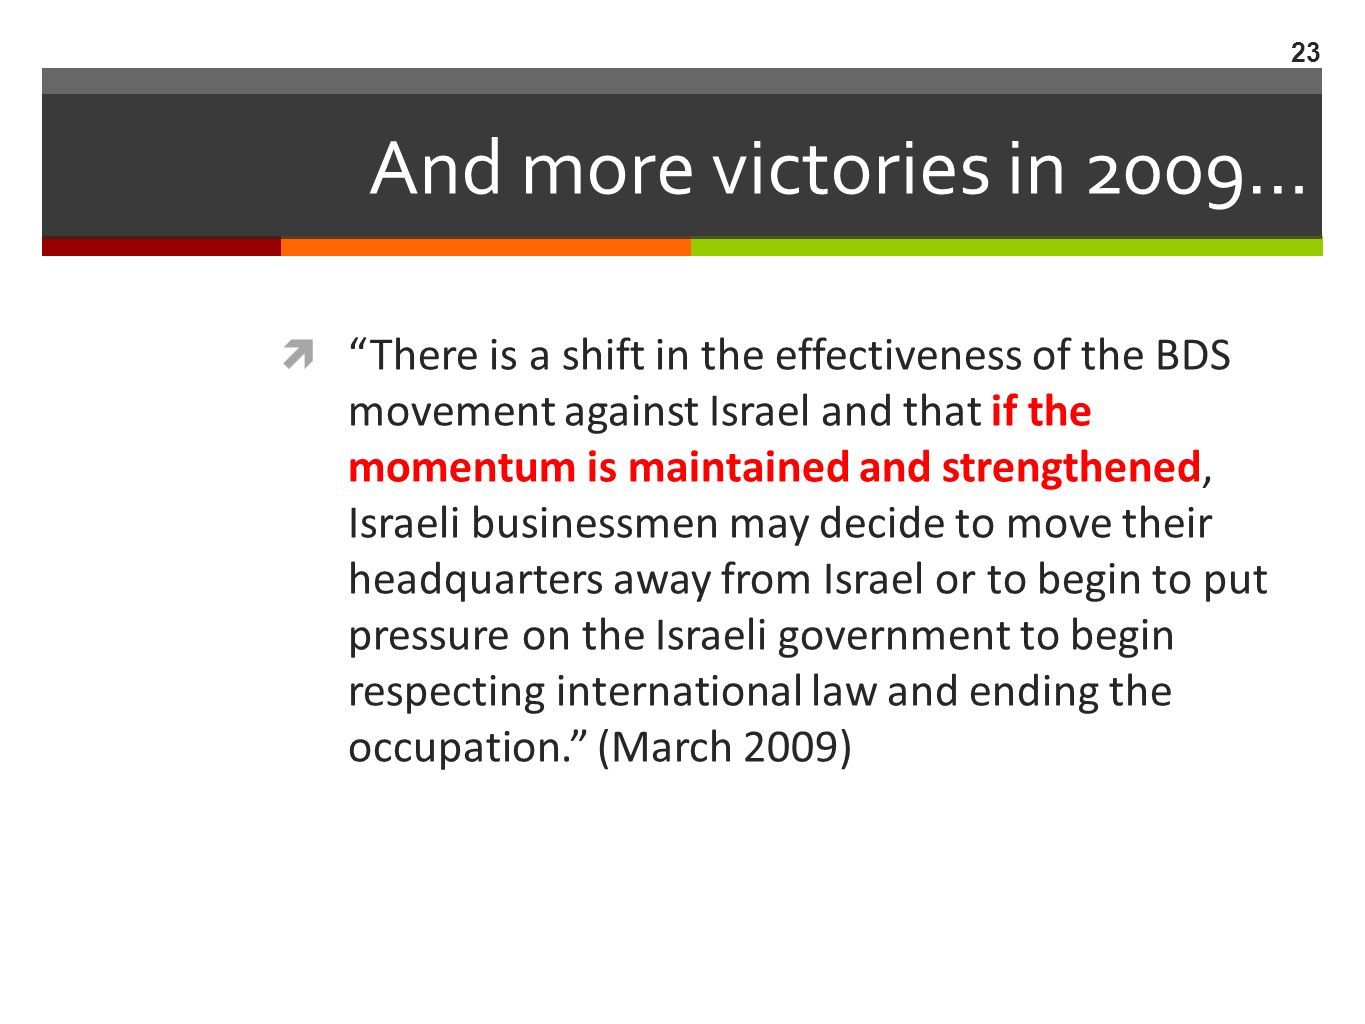 And more victories in 2009… There is a shift in the effectiveness of the BDS movement against Israel and that if the momentum is maintained and strengthened, Israeli businessmen may decide to move their headquarters away from Israel or to begin to put pressure on the Israeli government to begin respecting international law and ending the occupation.